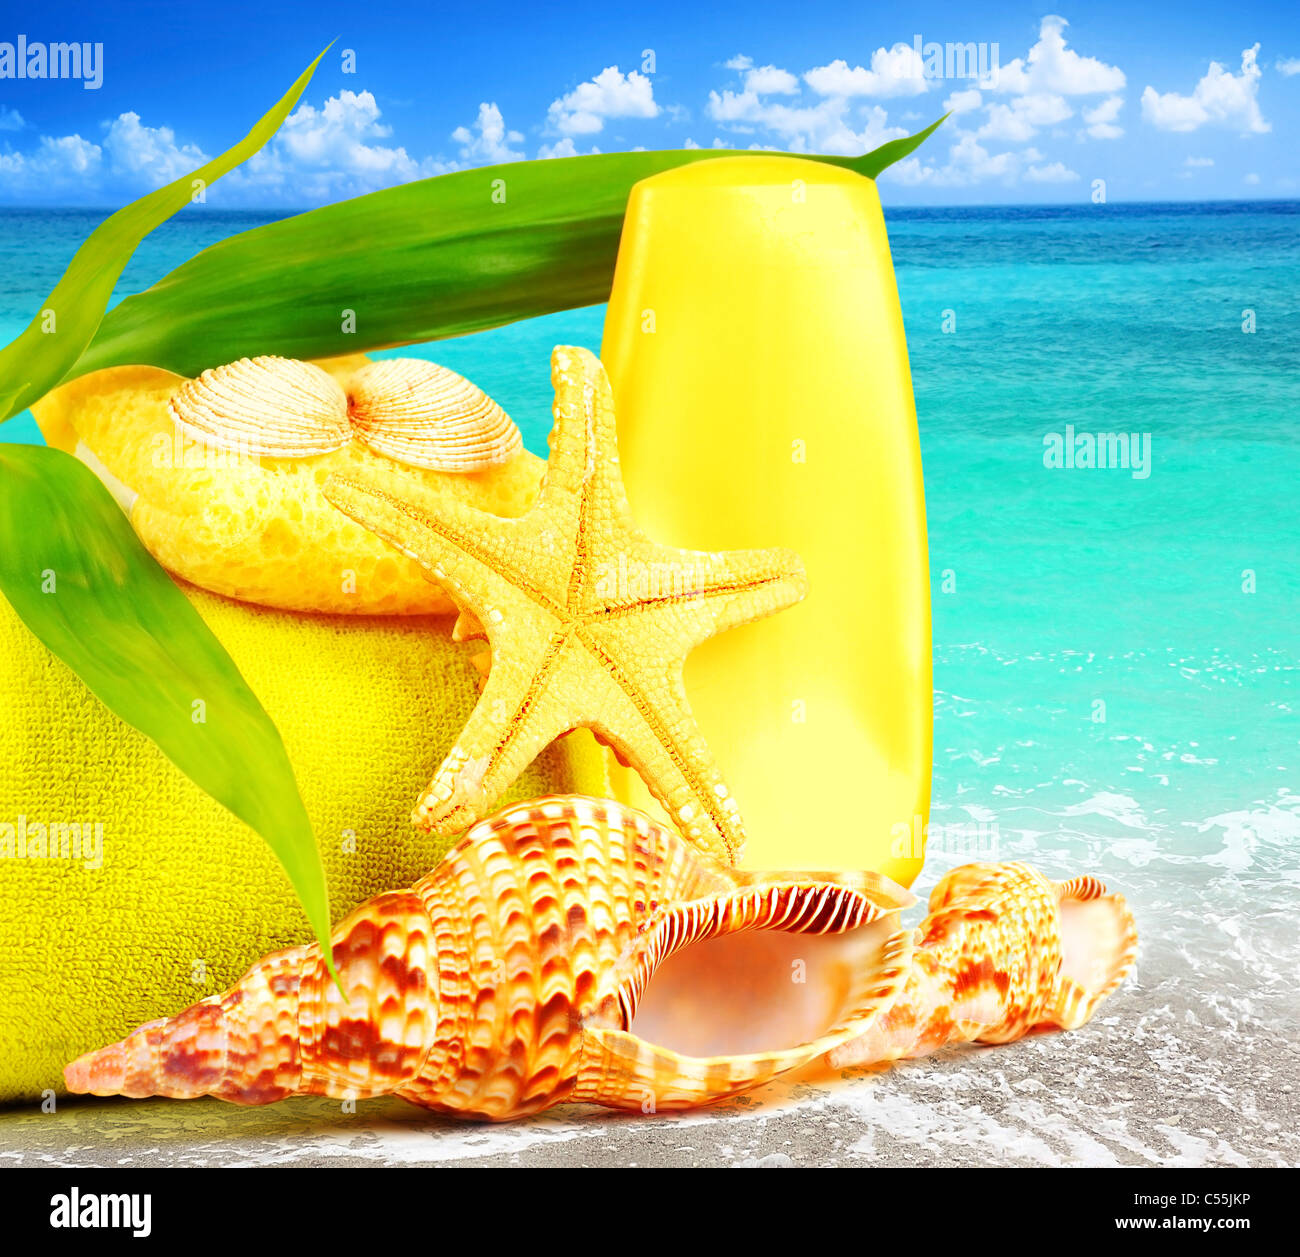 Beach items over blue sea conceptual image of summertime vacation & holidays - Stock Image